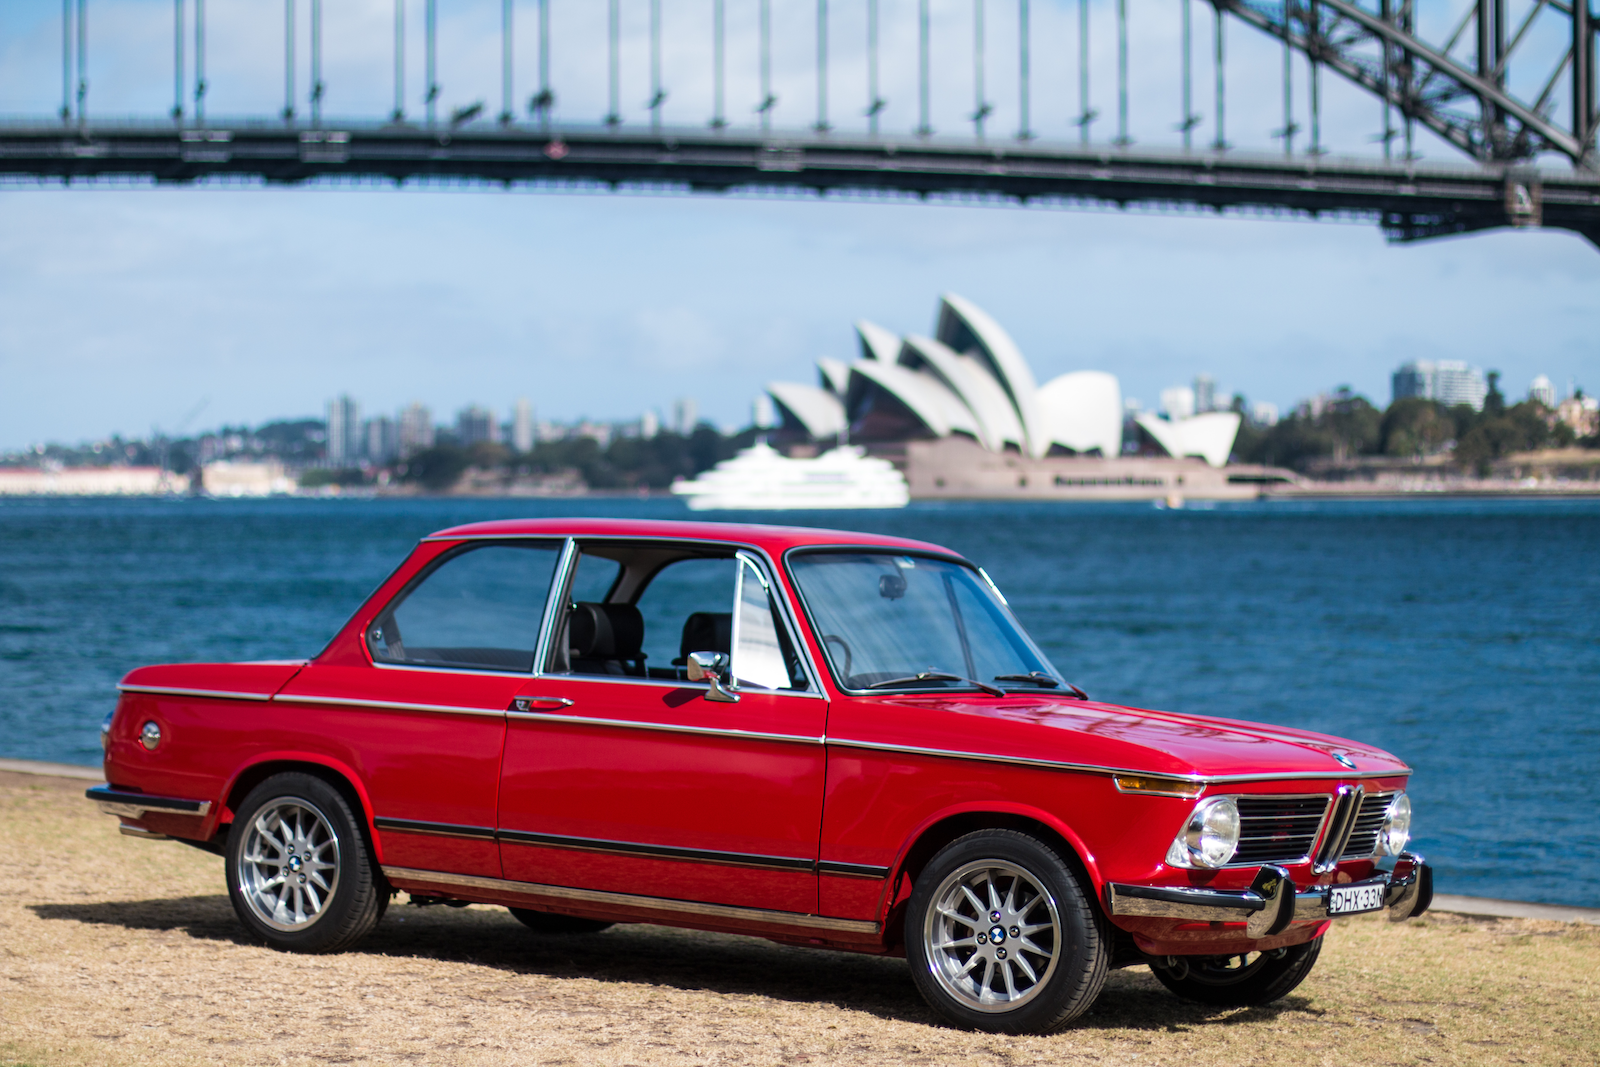 BMW 2002 Car Full Size PNG 1600x1067 - FUEL Bespoke Design BMW 2002